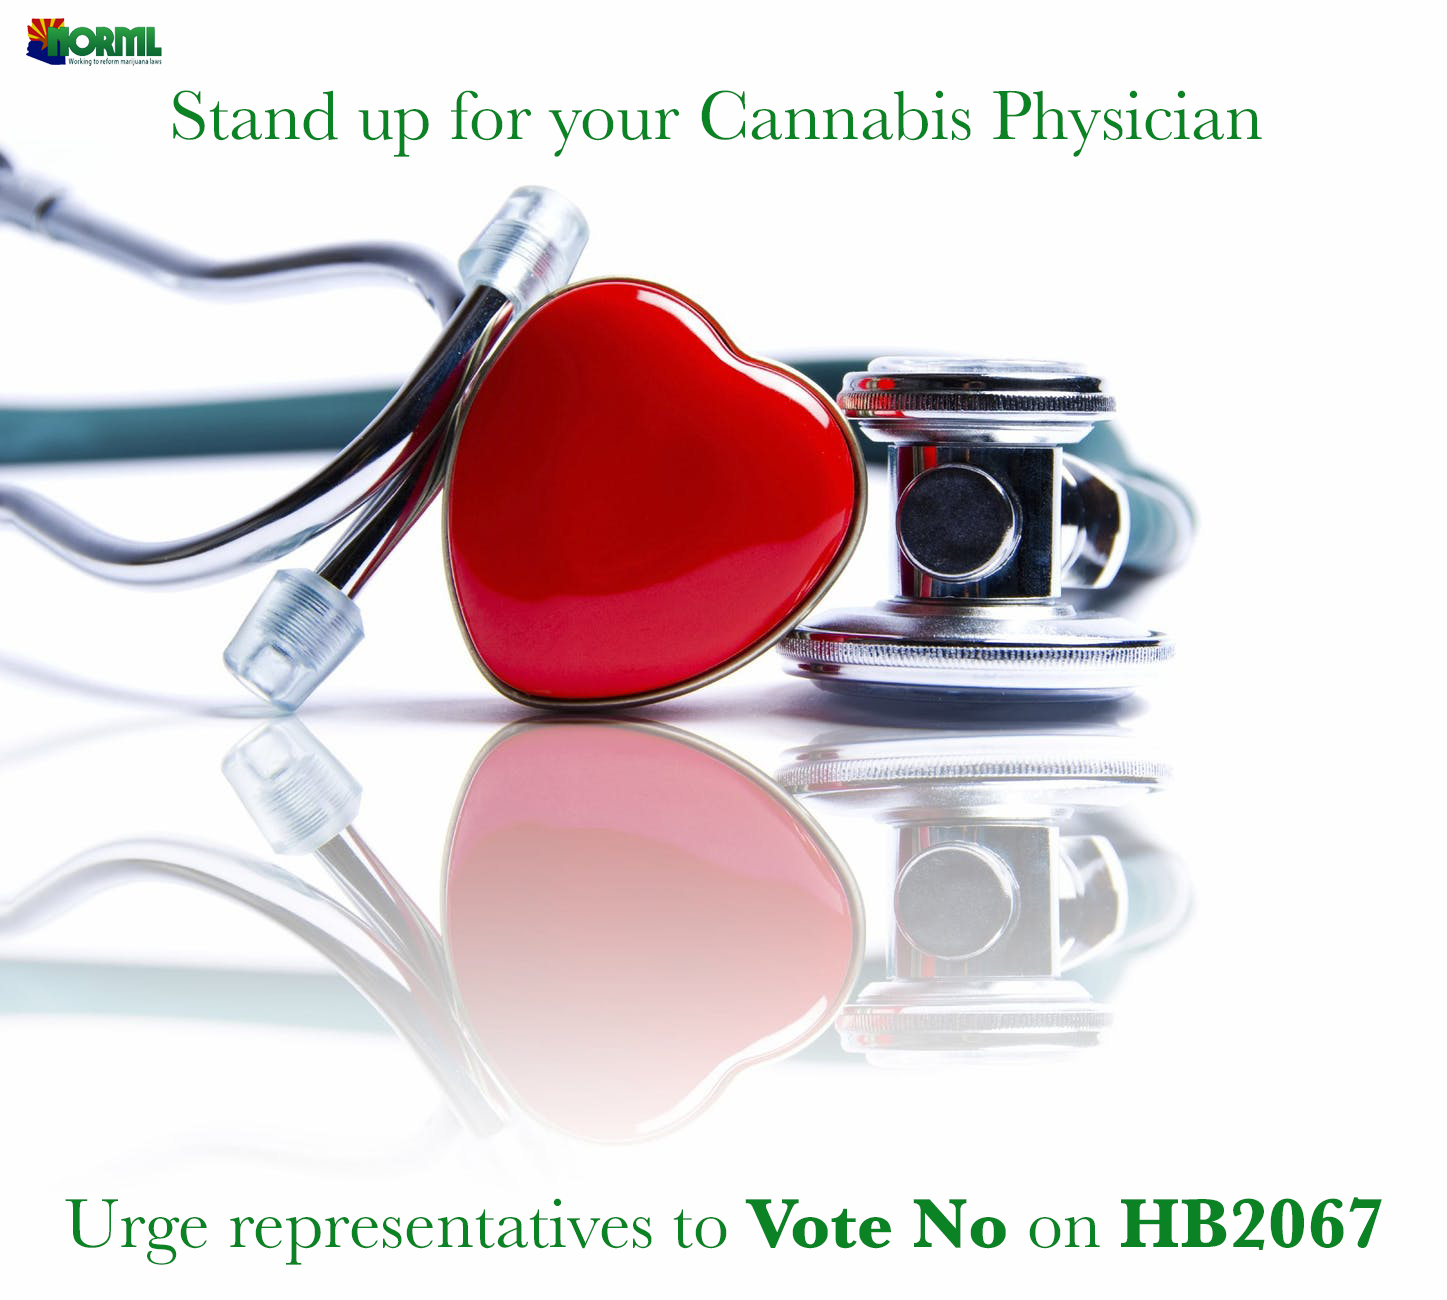 stand up for cannabis physician